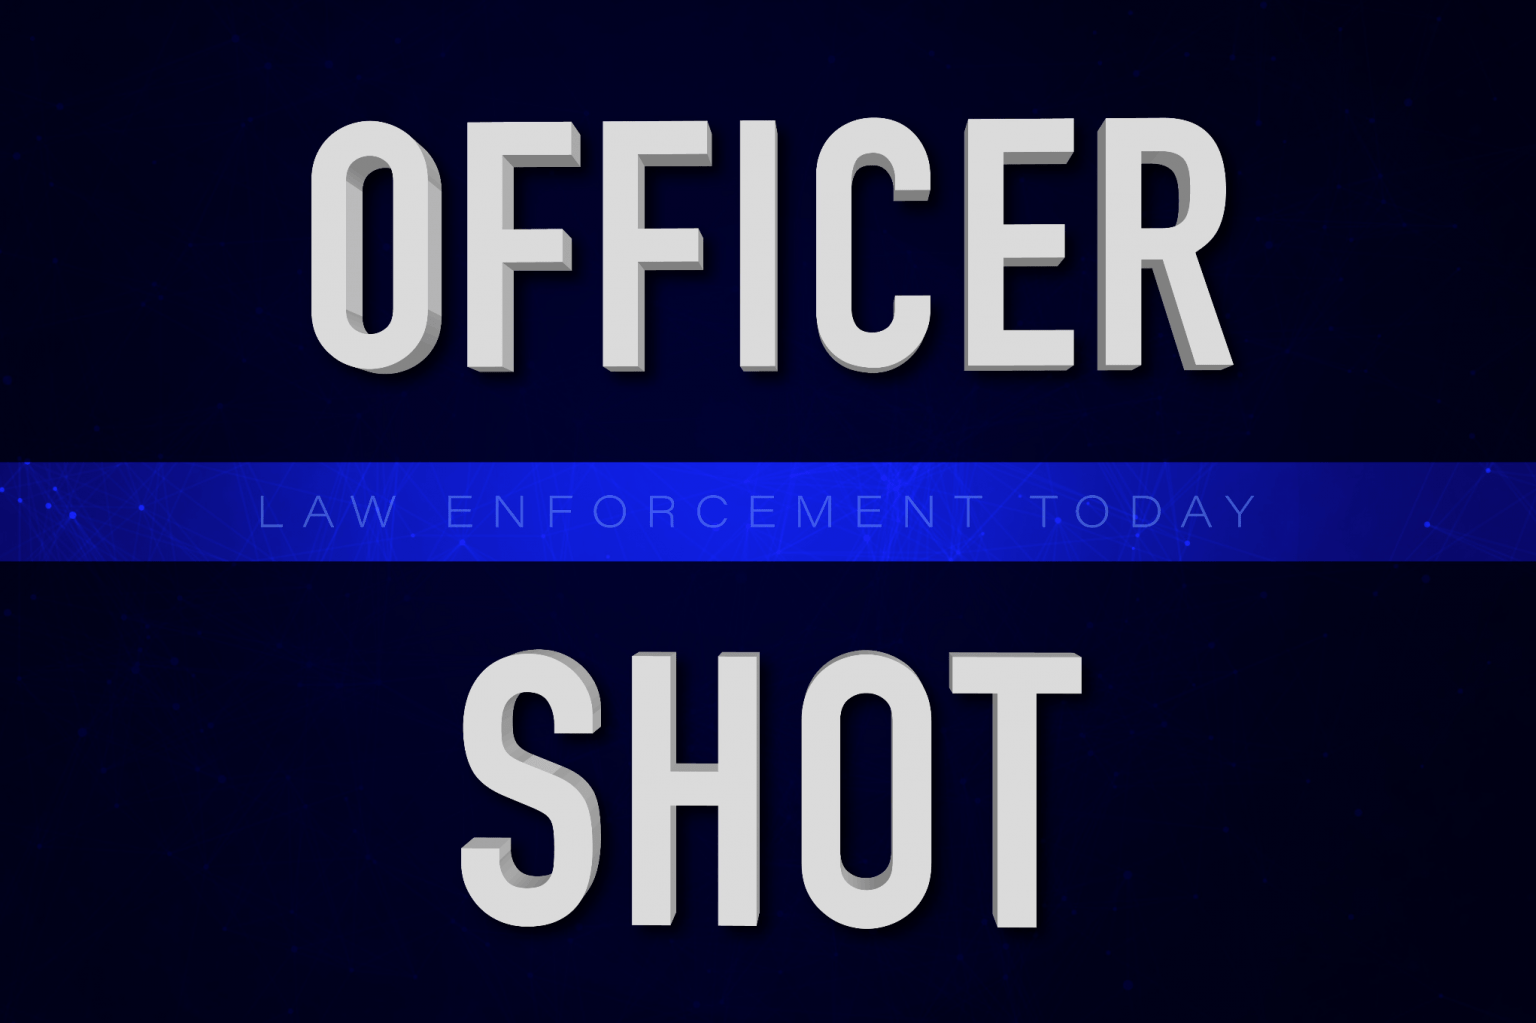 Officer Shot